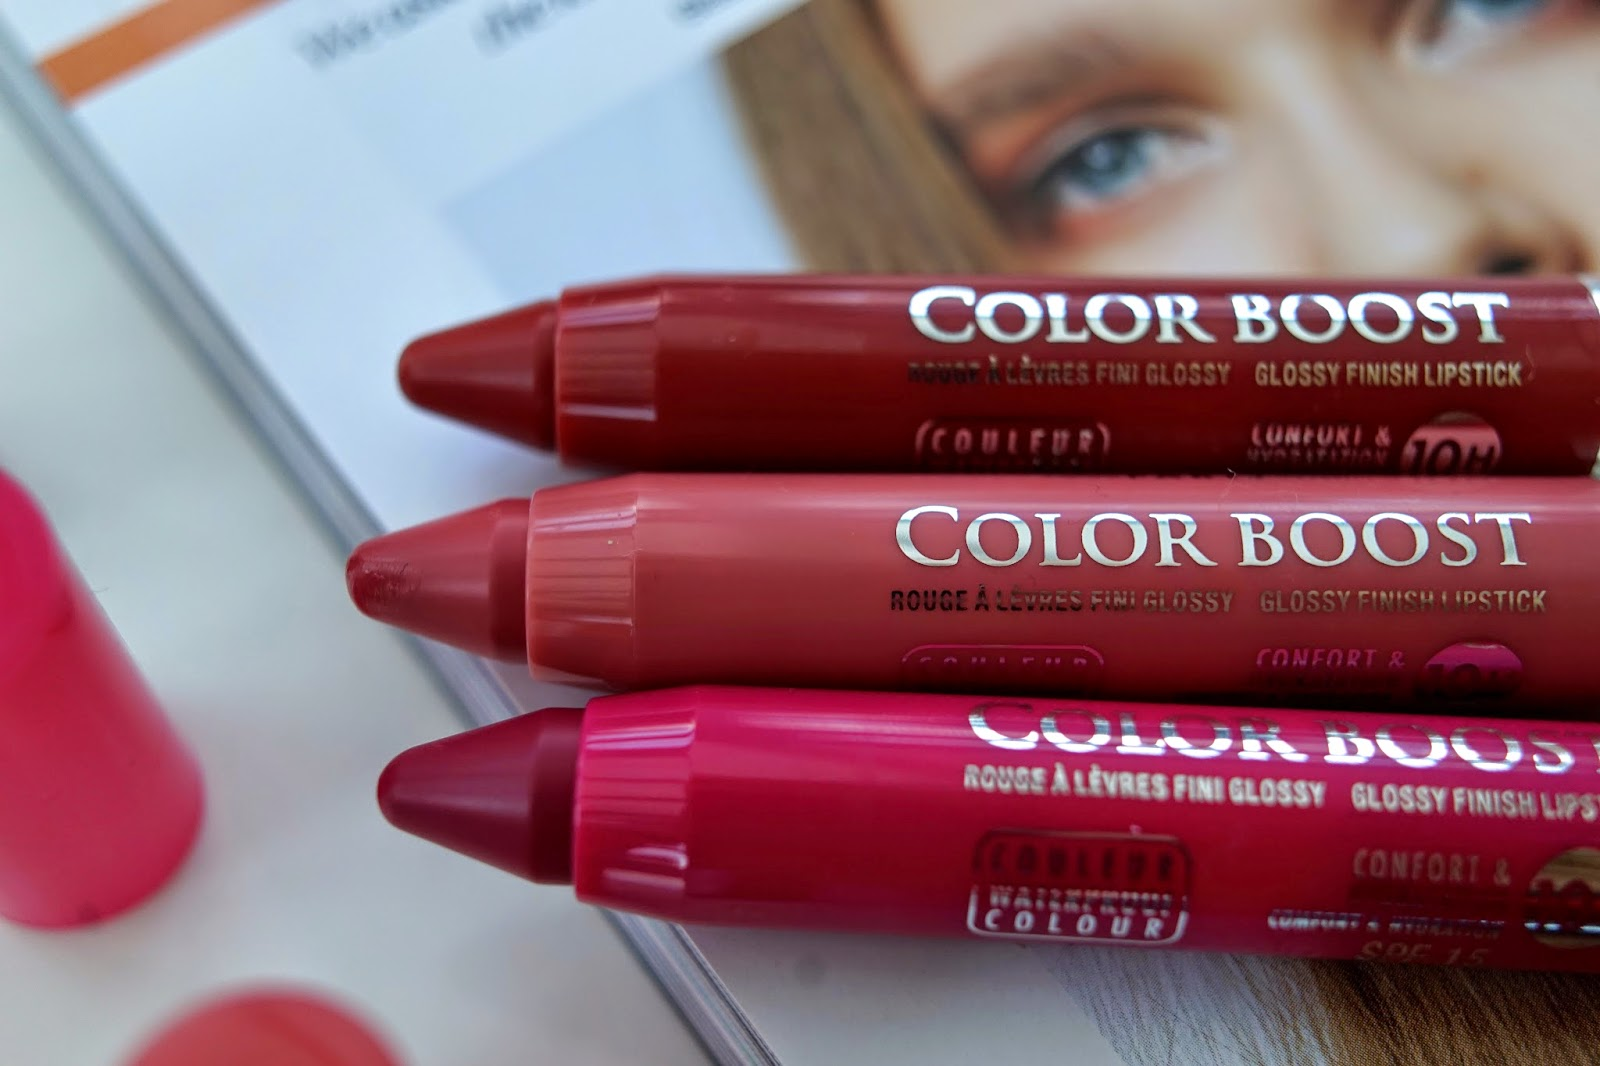 bourjois color boost lipsticks